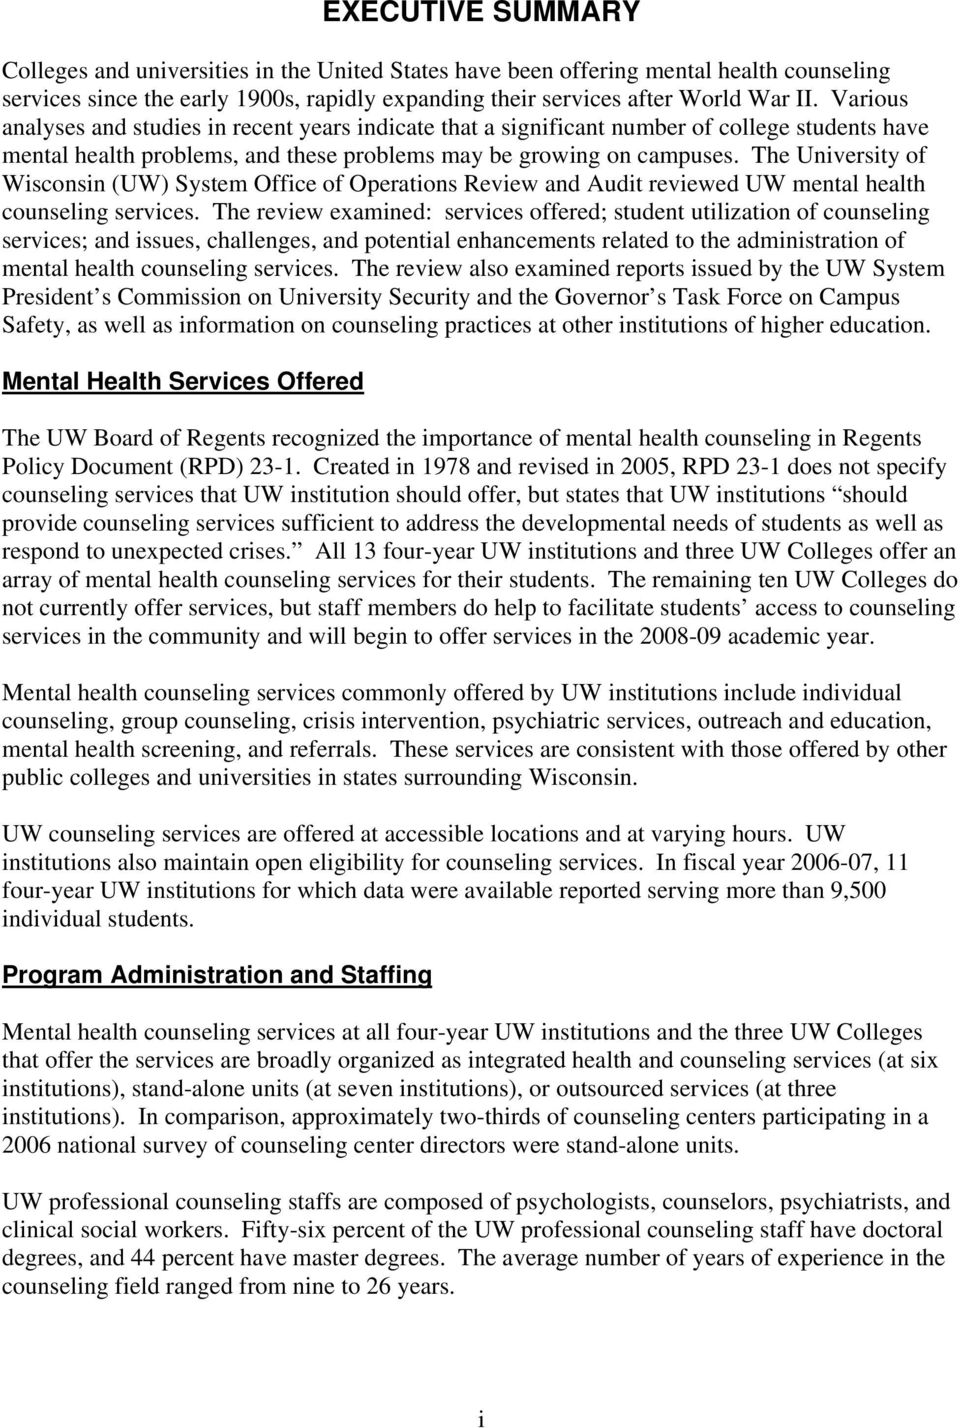 The University of Wisconsin (UW) System Office of Operations Review and Audit reviewed UW mental health counseling services.